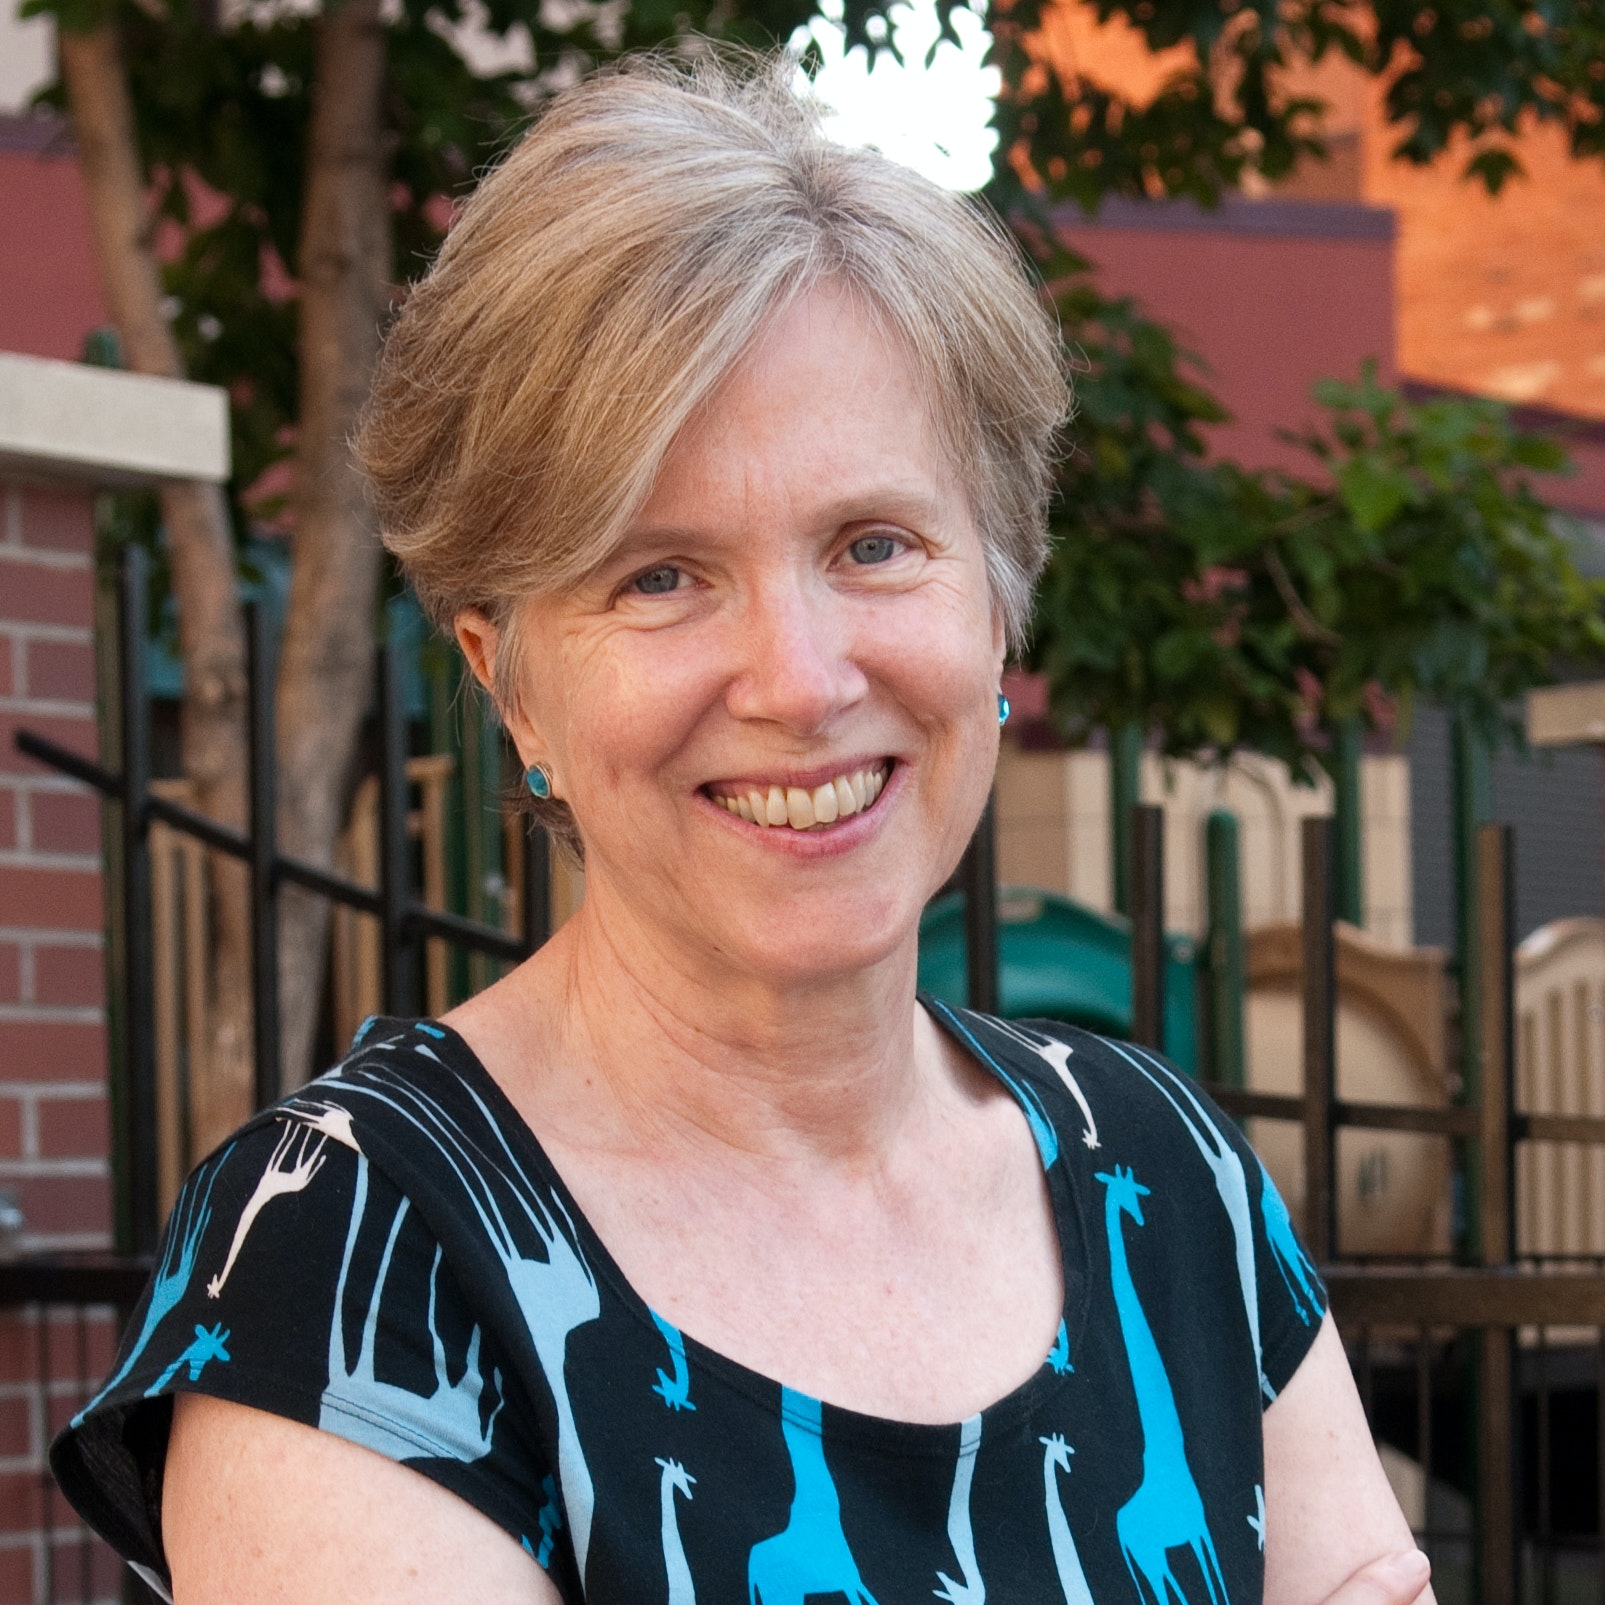 Ann S. Masten, Ph.D., LP